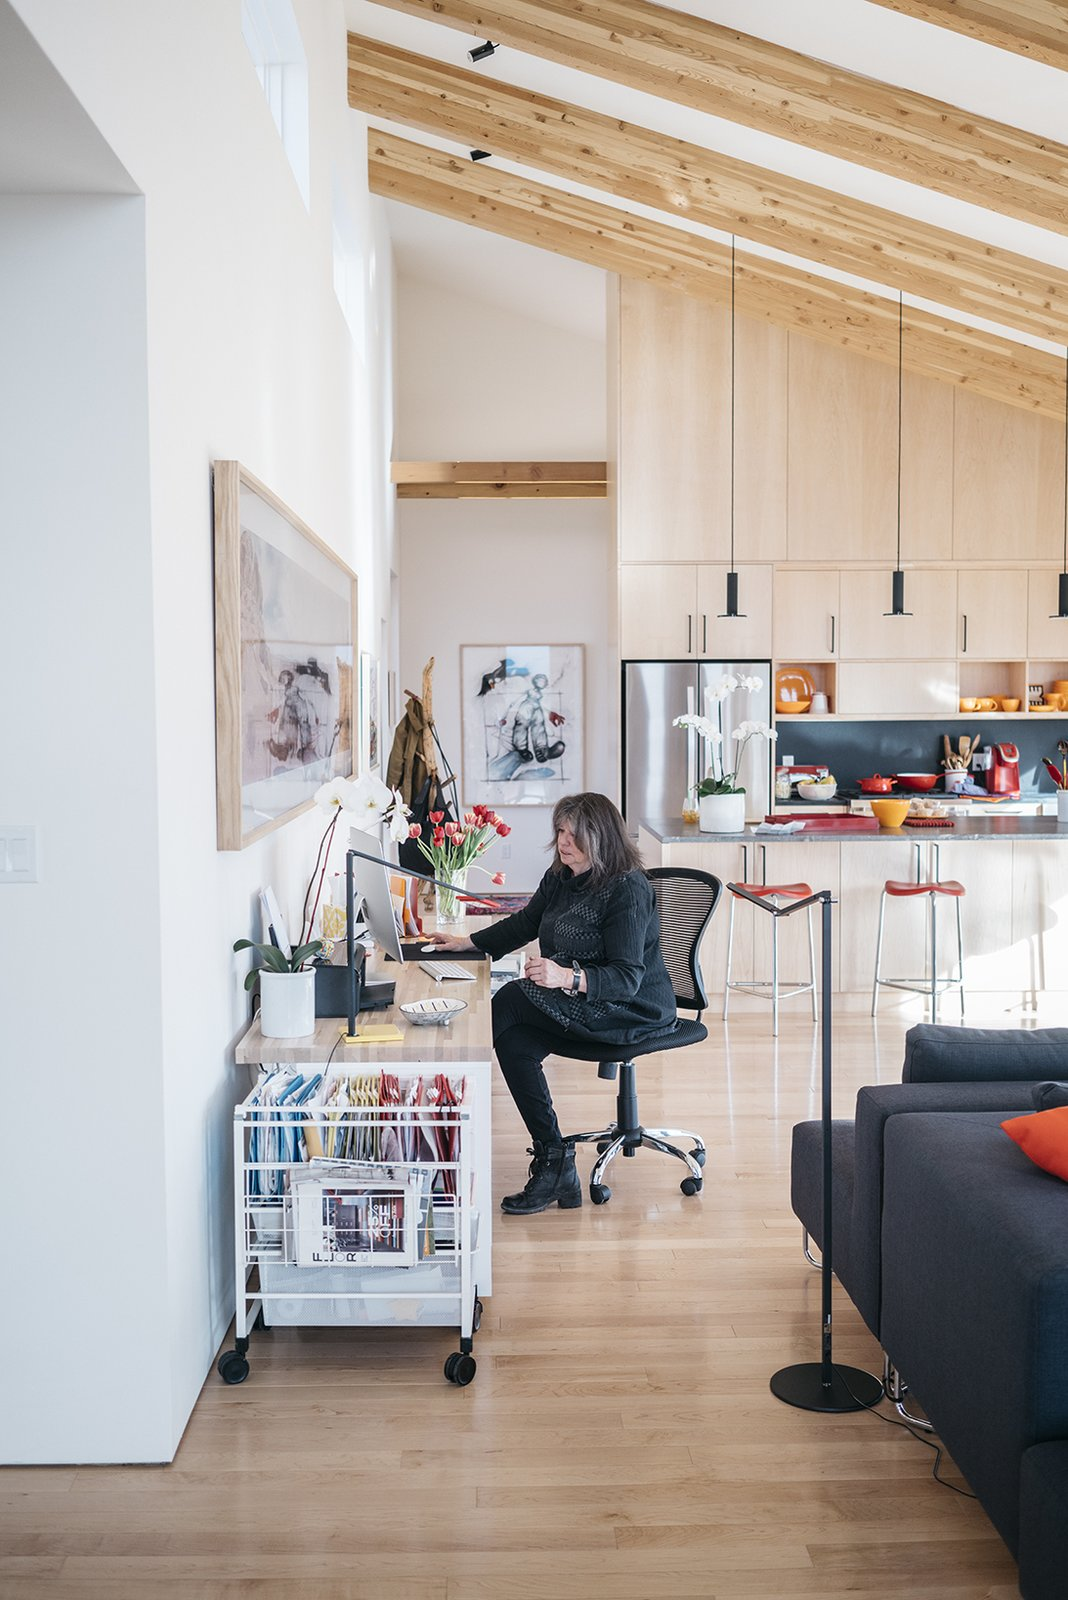 - Taos, New Mexico Dwell Magazine : July / August 2017 Tagged: Office, Craft Room, Chair, Desk, Storage, Lamps, and Light Hardwood Floor.  Photo 9 of 11 in A Rookie Designer and Her Builder Father Create an Artist's Sculptural Loft in the Desert